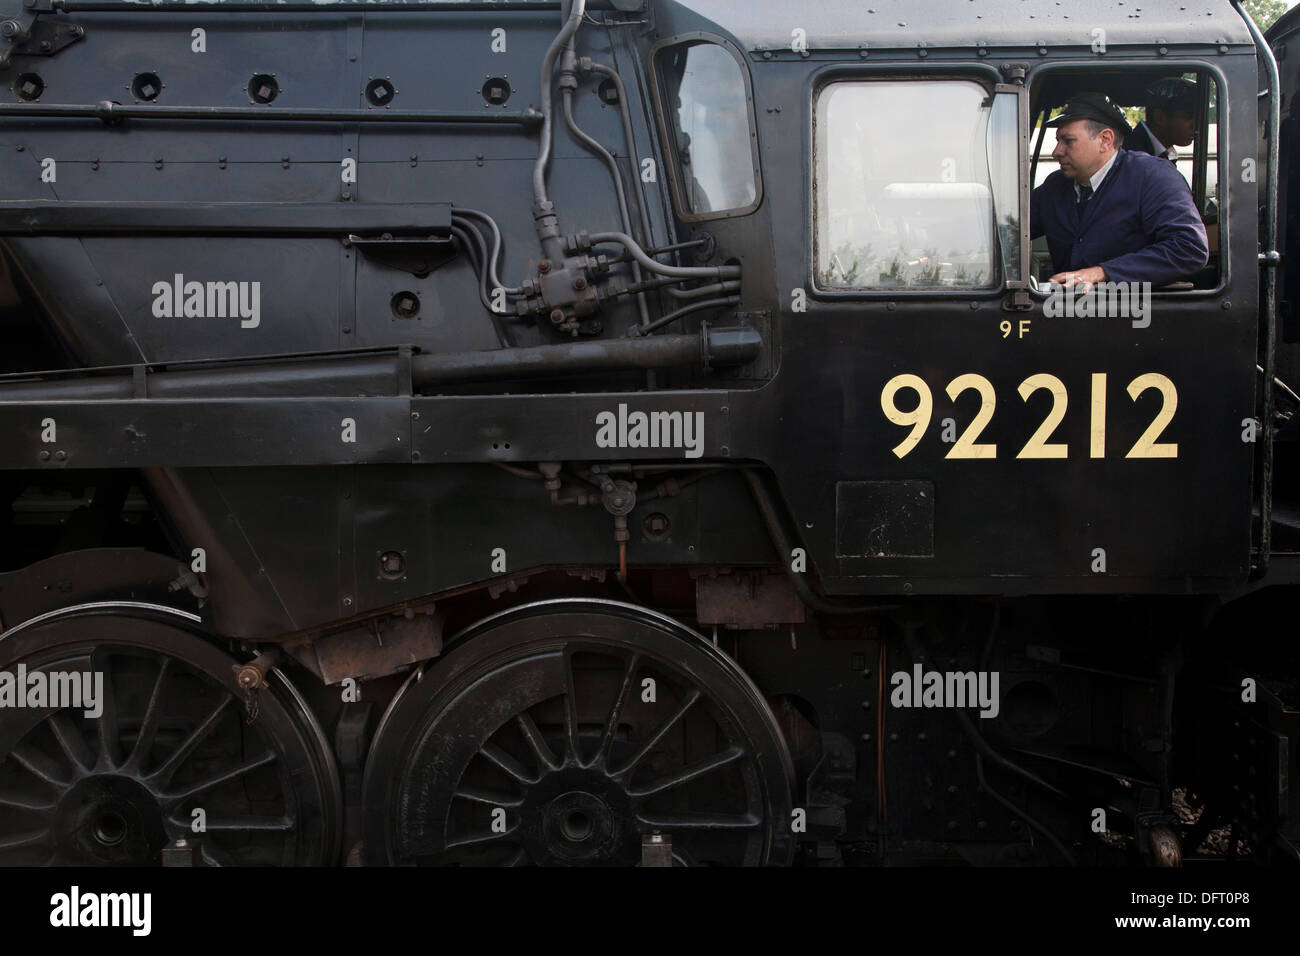 Steam locomotive 92212 with train driver in window on the Bluebell Railway - Stock Image